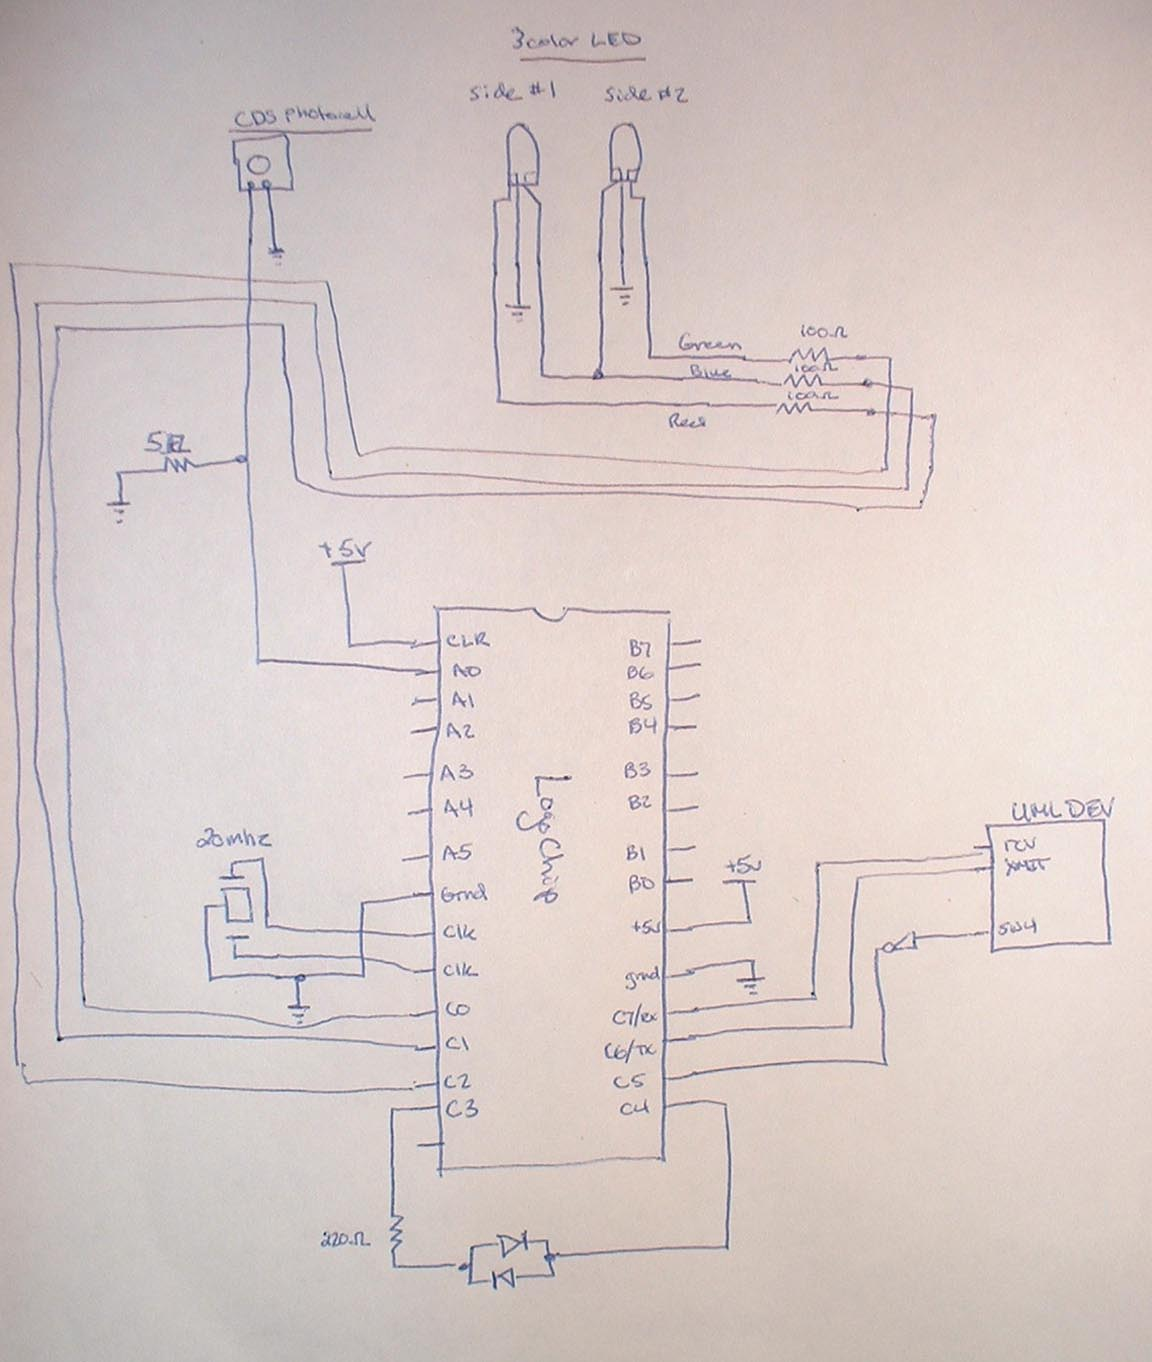 photocell wiring schematic